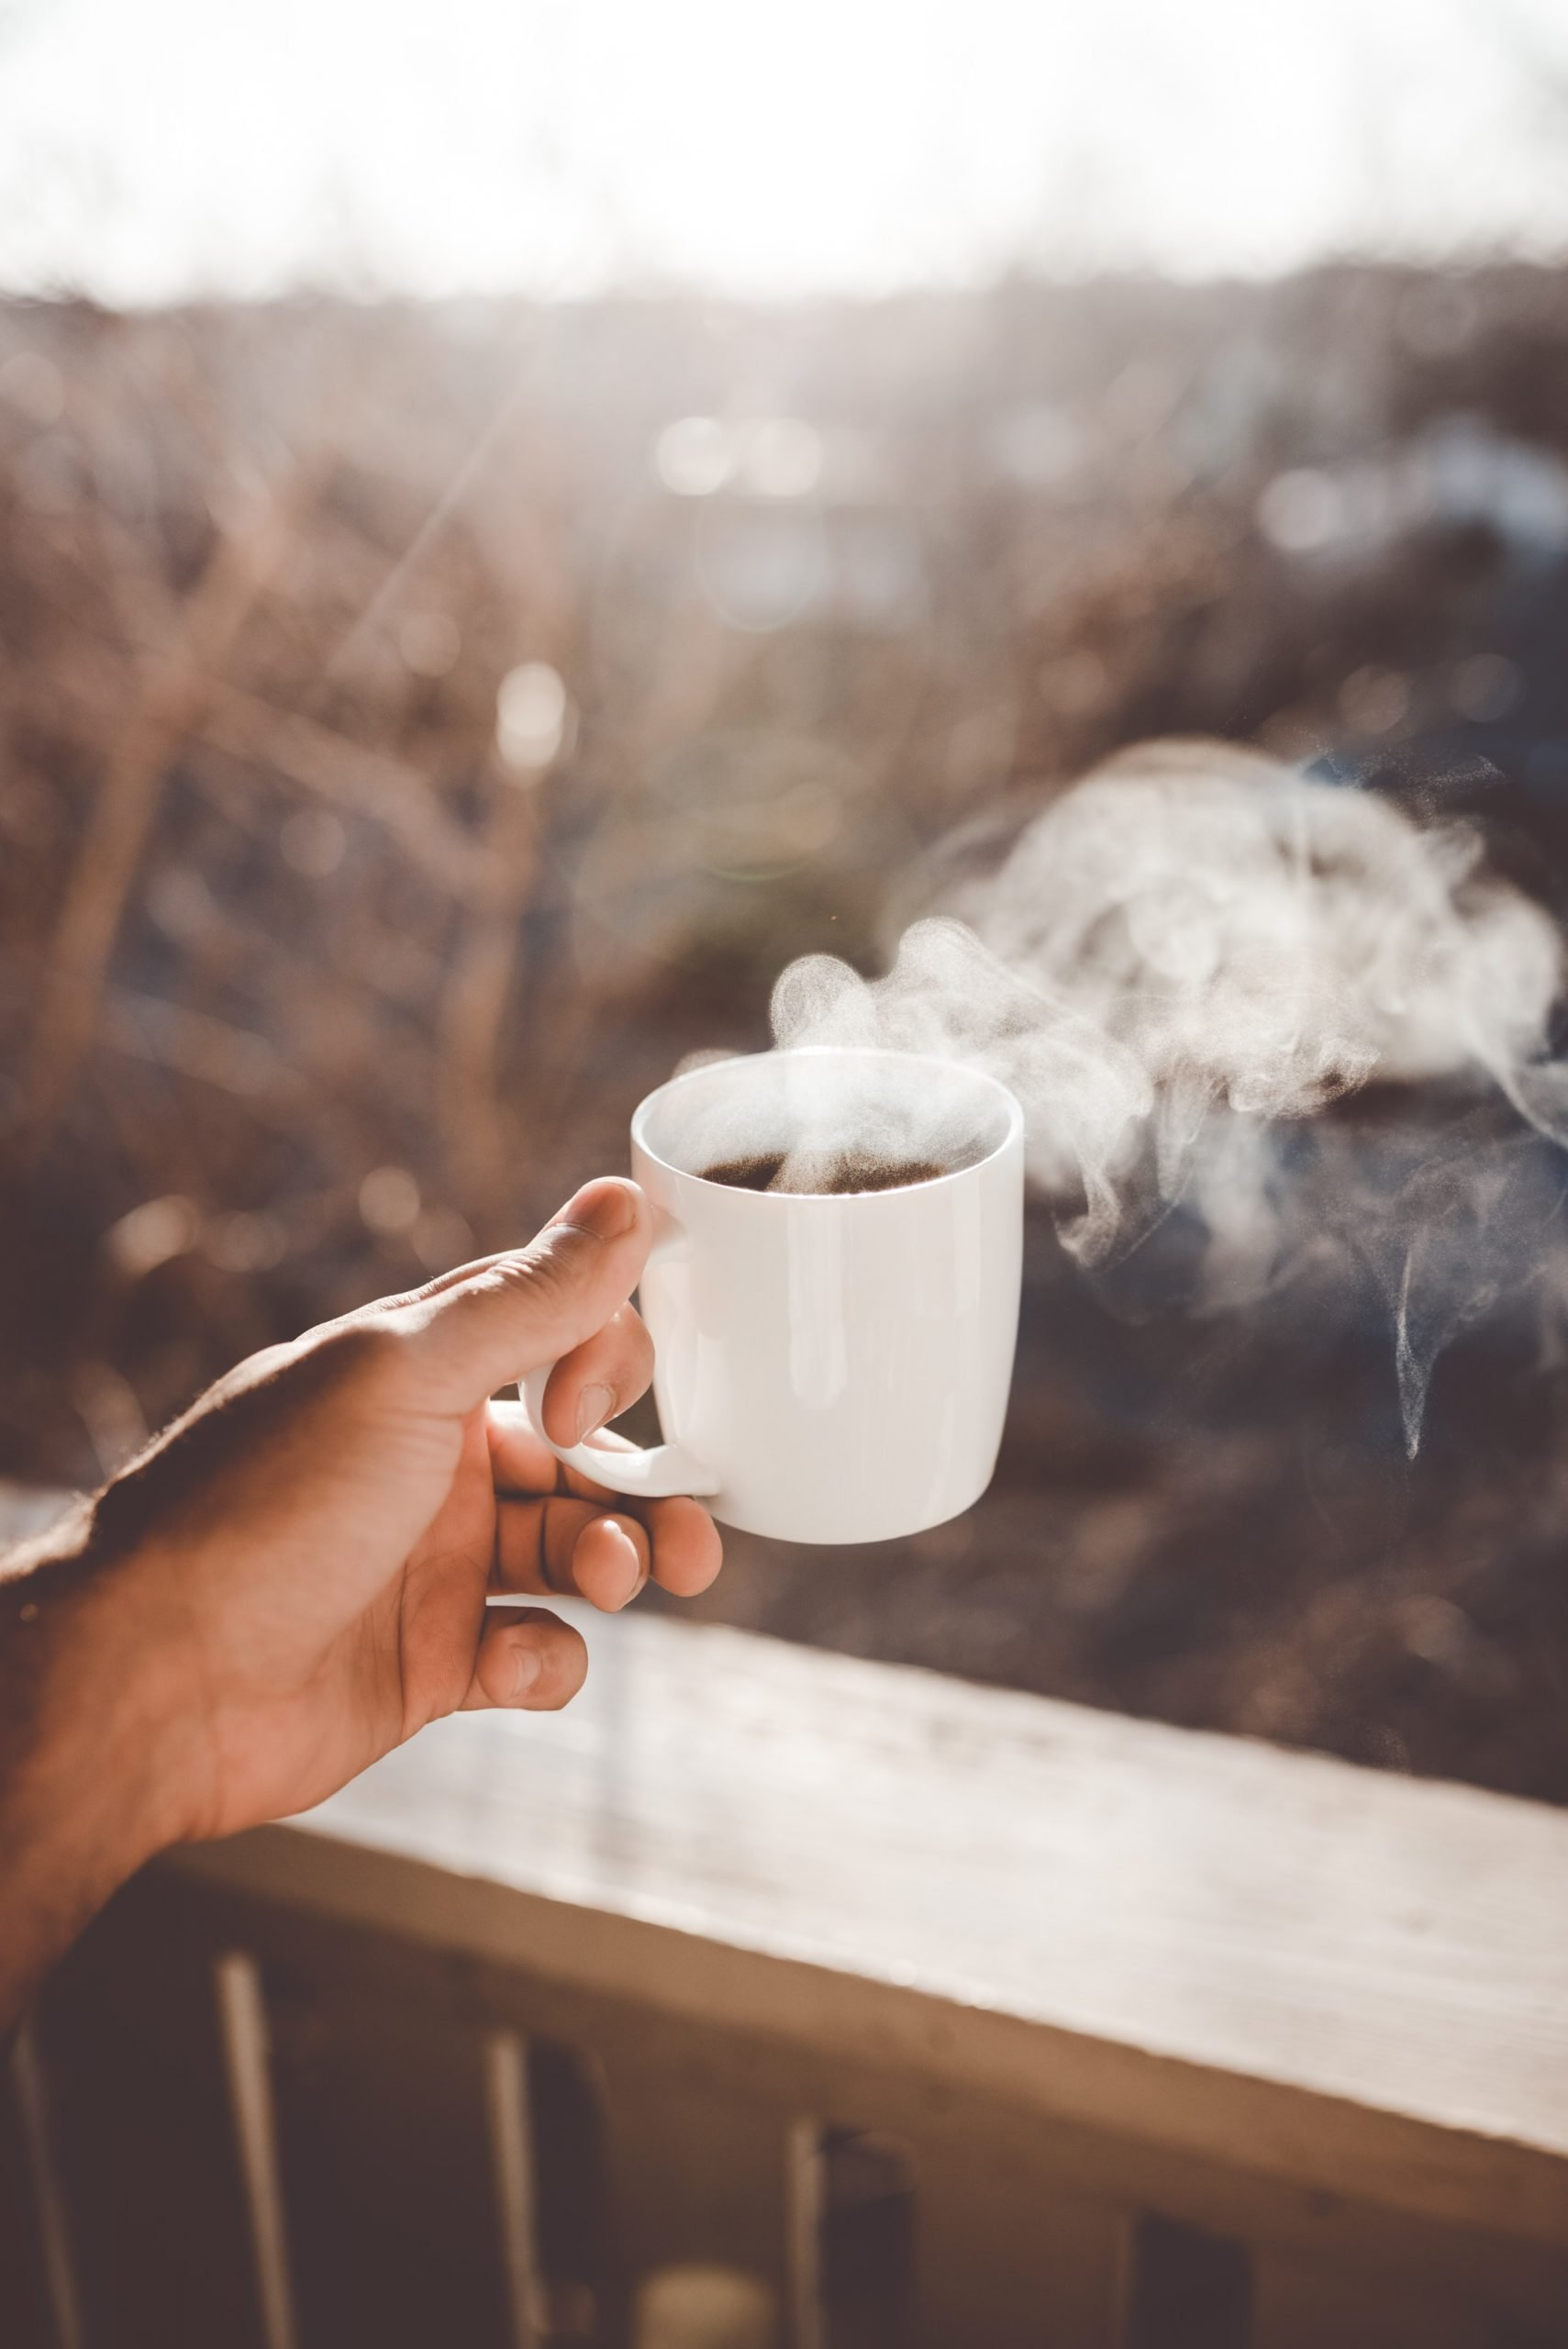 Coffee cup with steam coming out of it